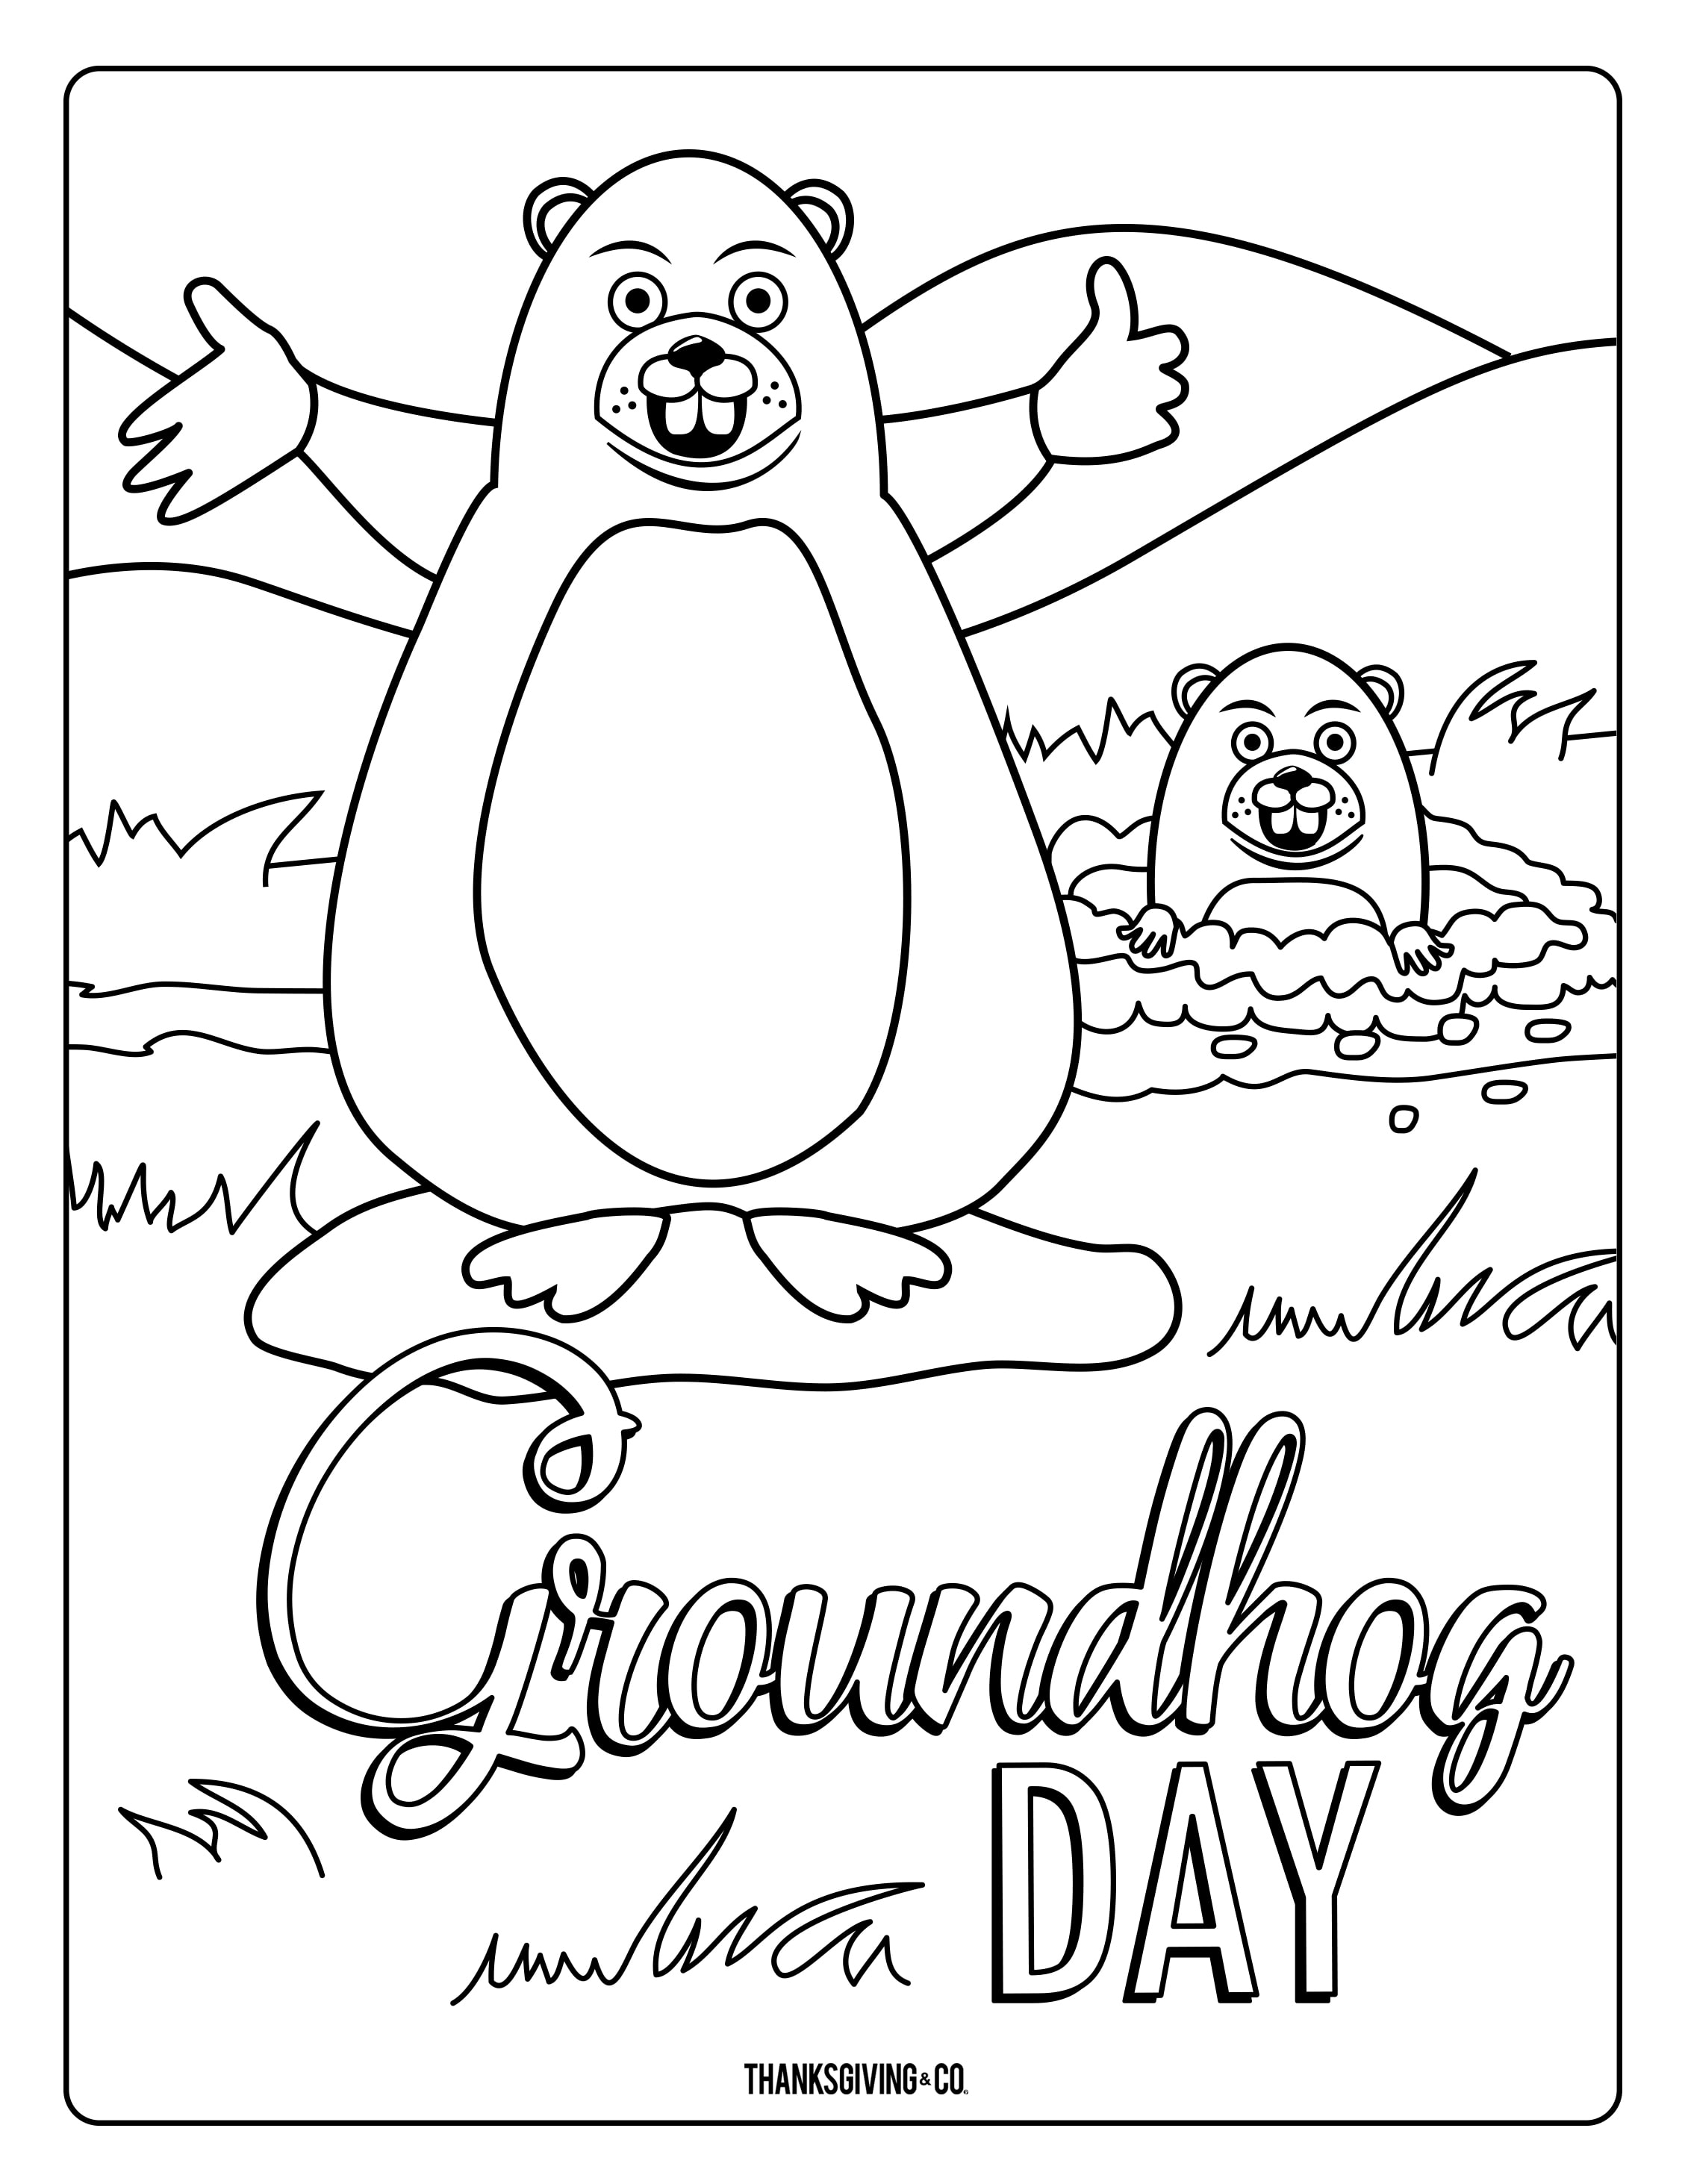 groundhog-day-coloring-pages